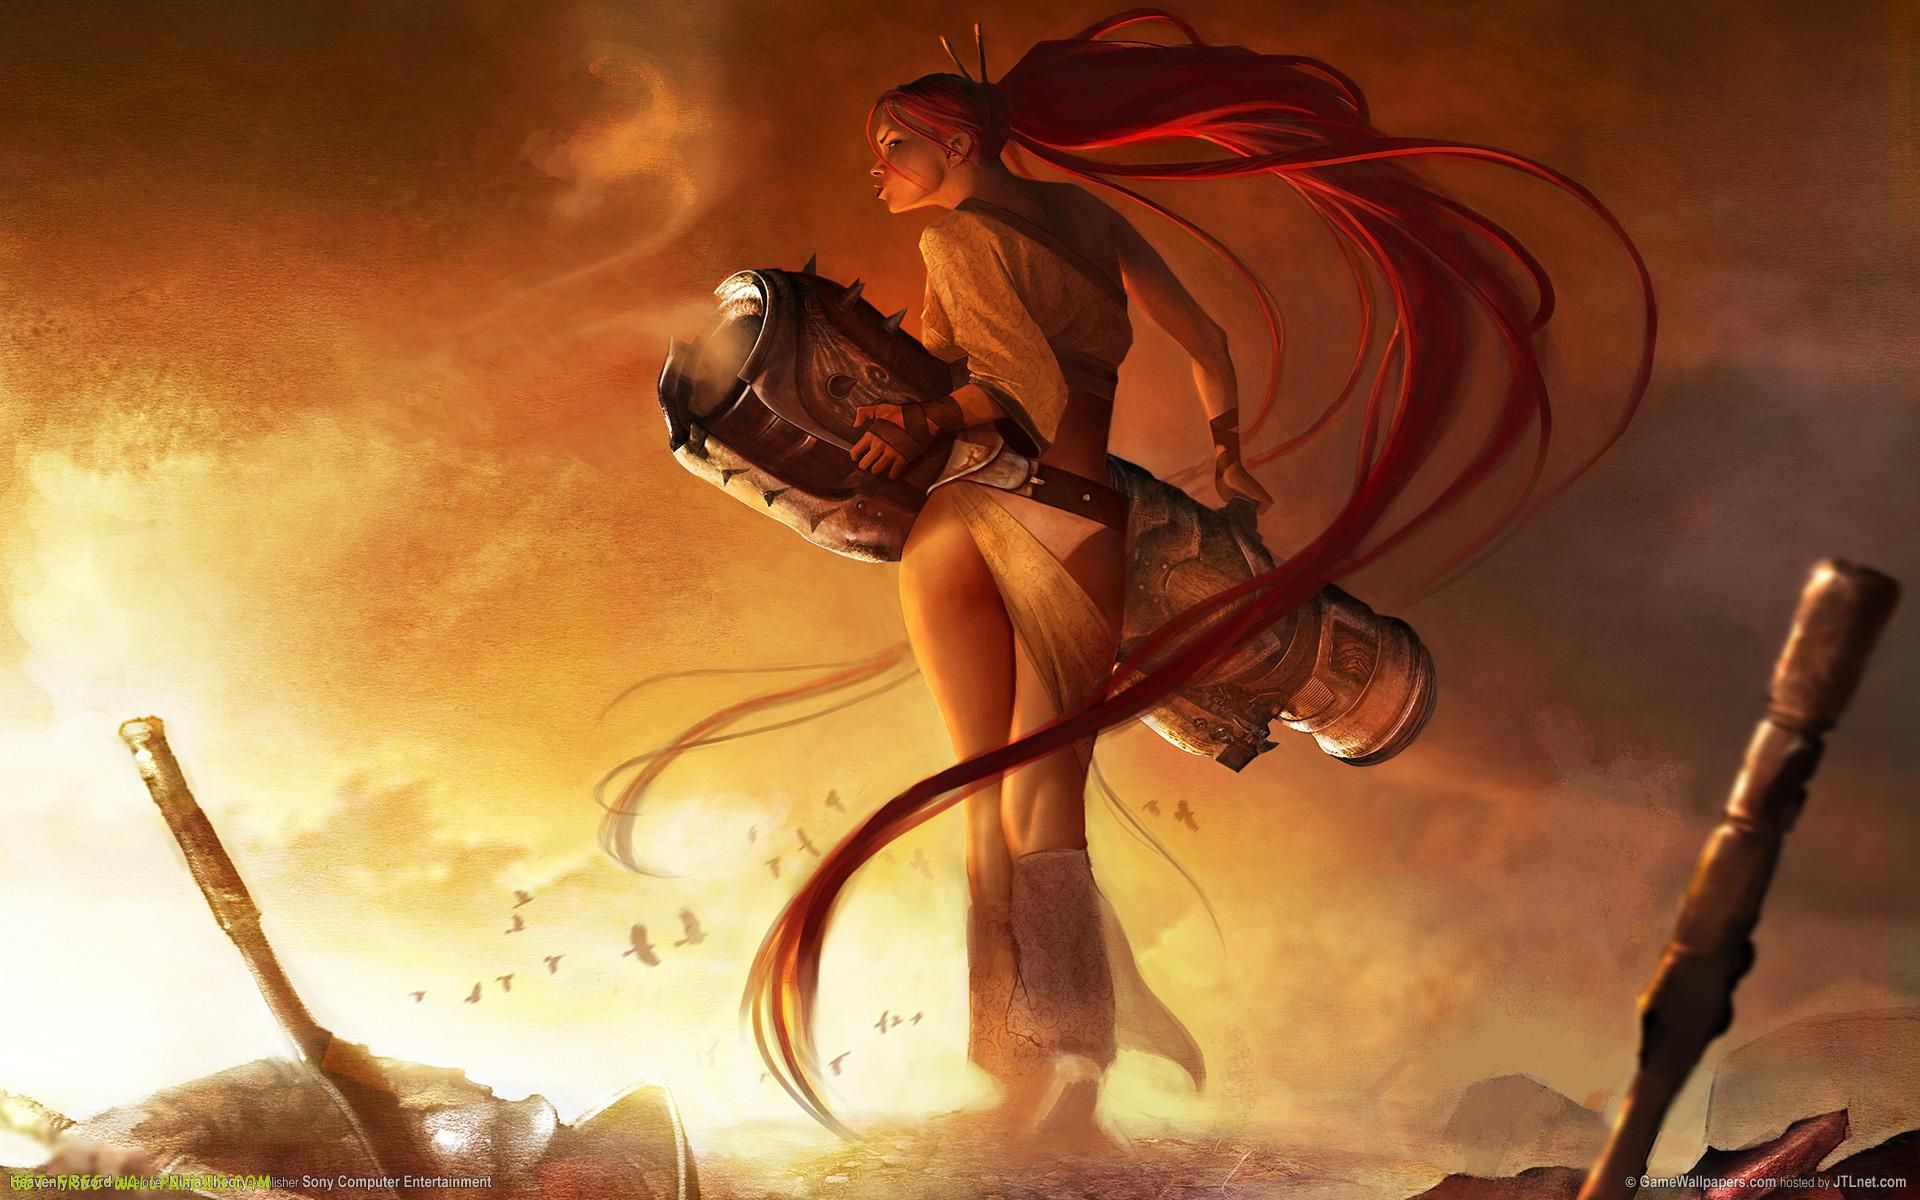 click here to download in hd format >> heavenly sword game http